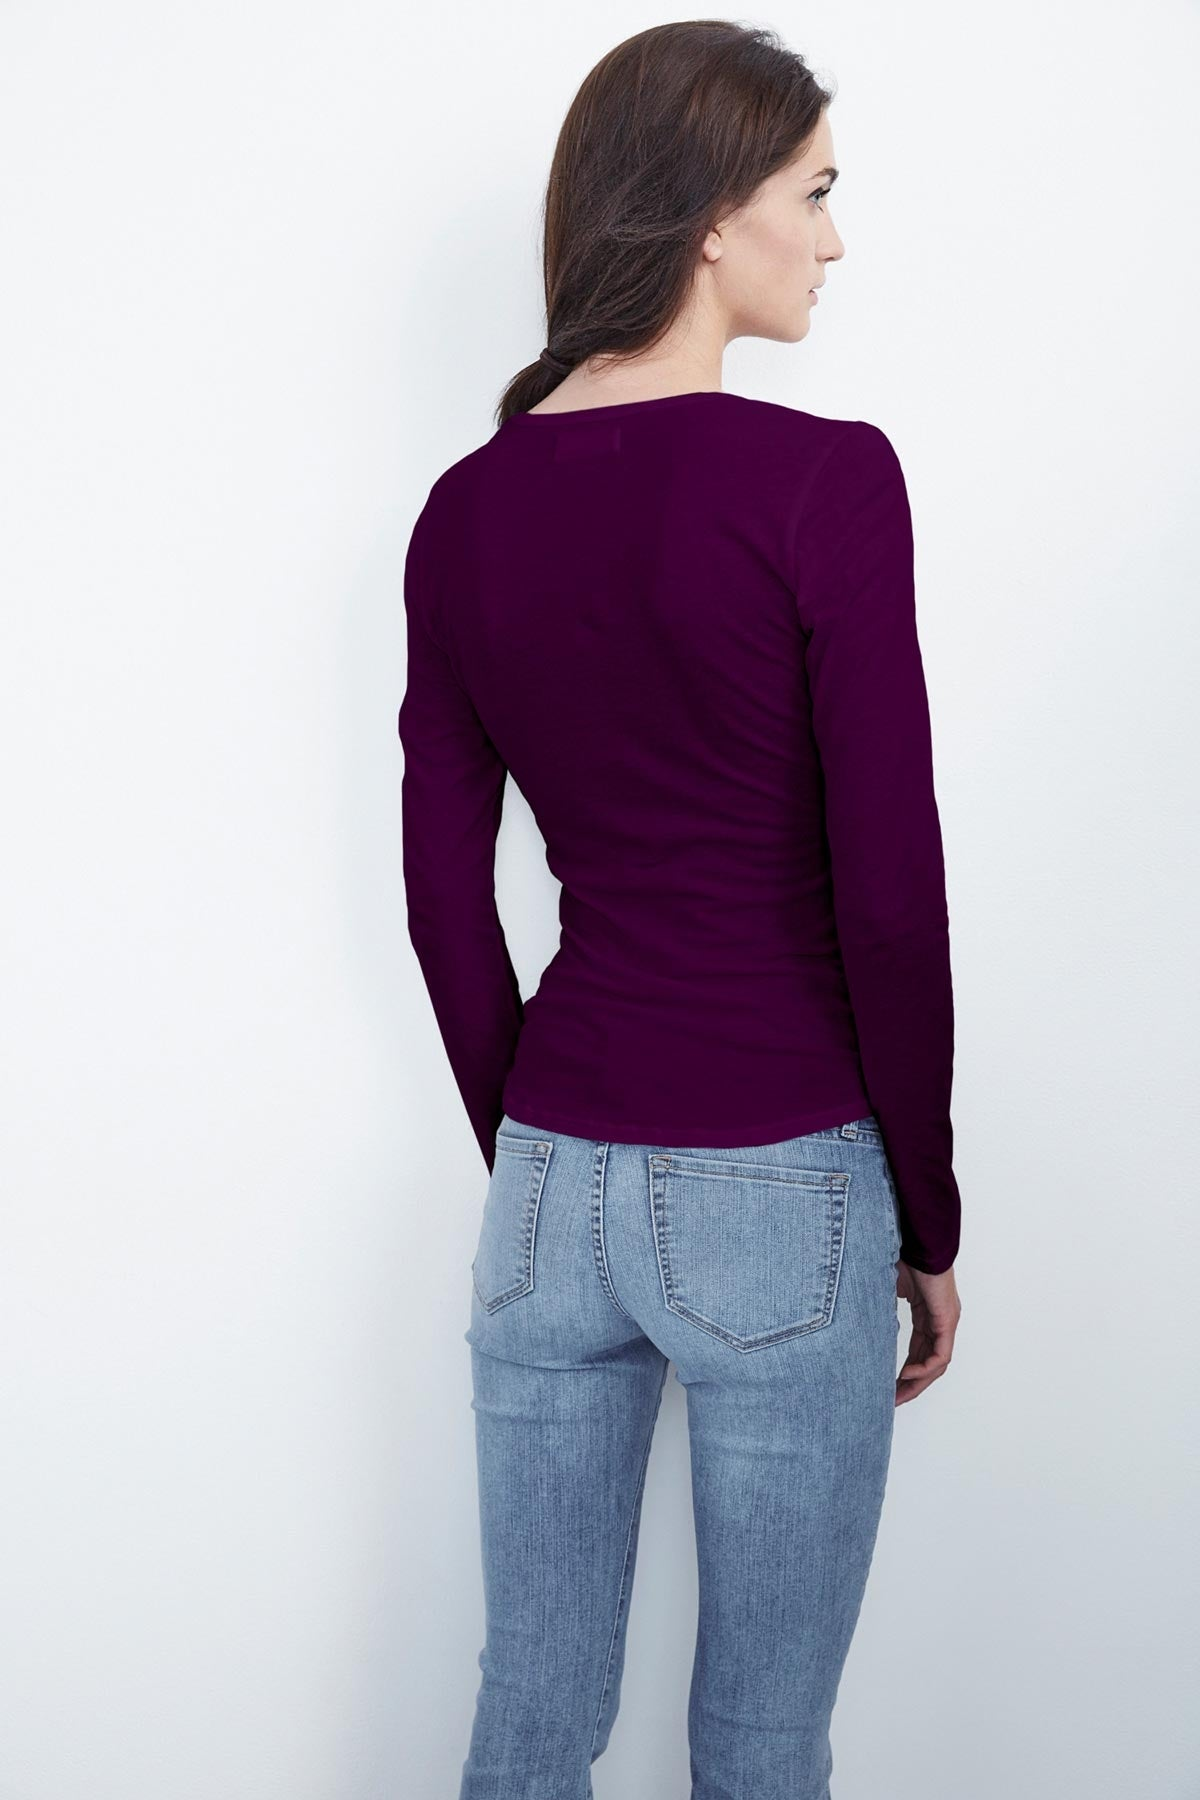 ALENE GAUZY WHISPER FITTED HENLEY